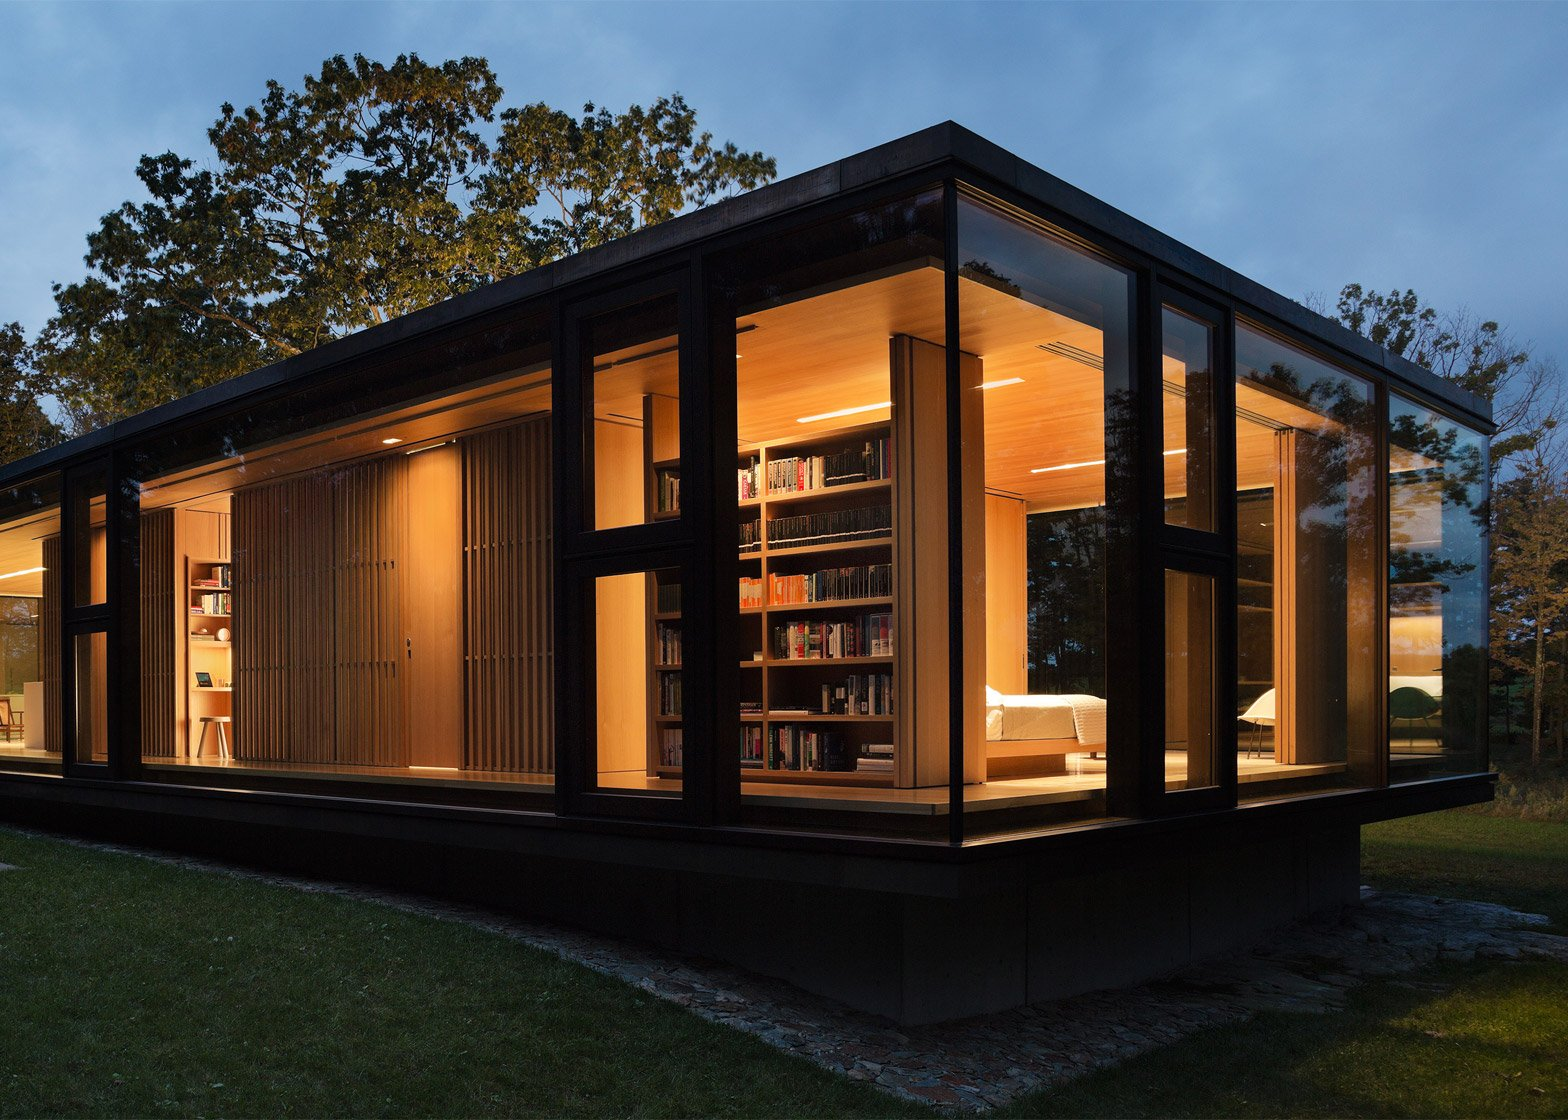 LM Guest House by Desai Chia Architects in Dutchess County, New York